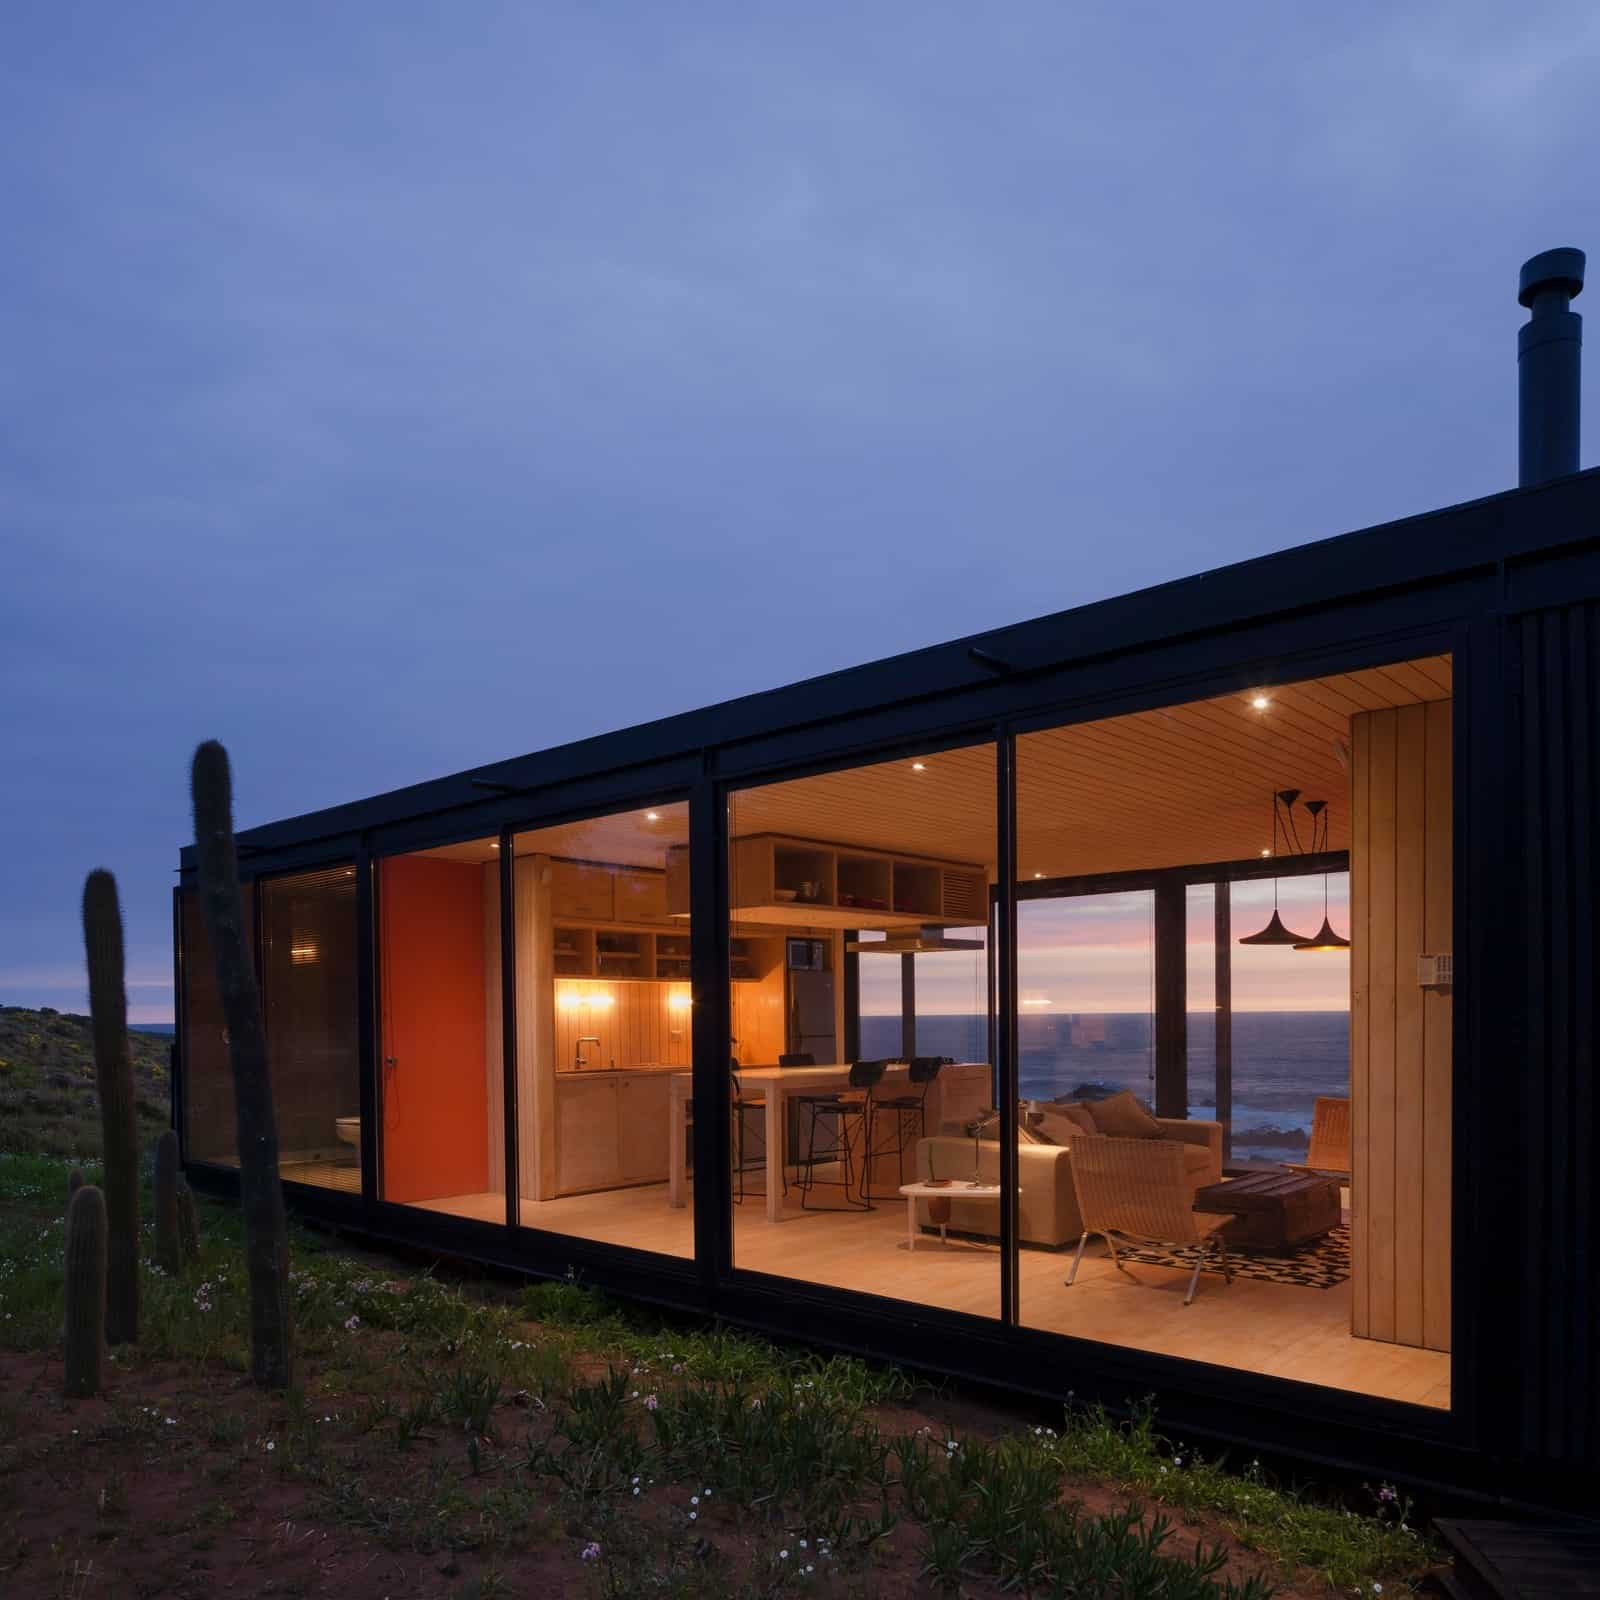 Remote Transportable Modular House in Chile by Felipe Assadi 4